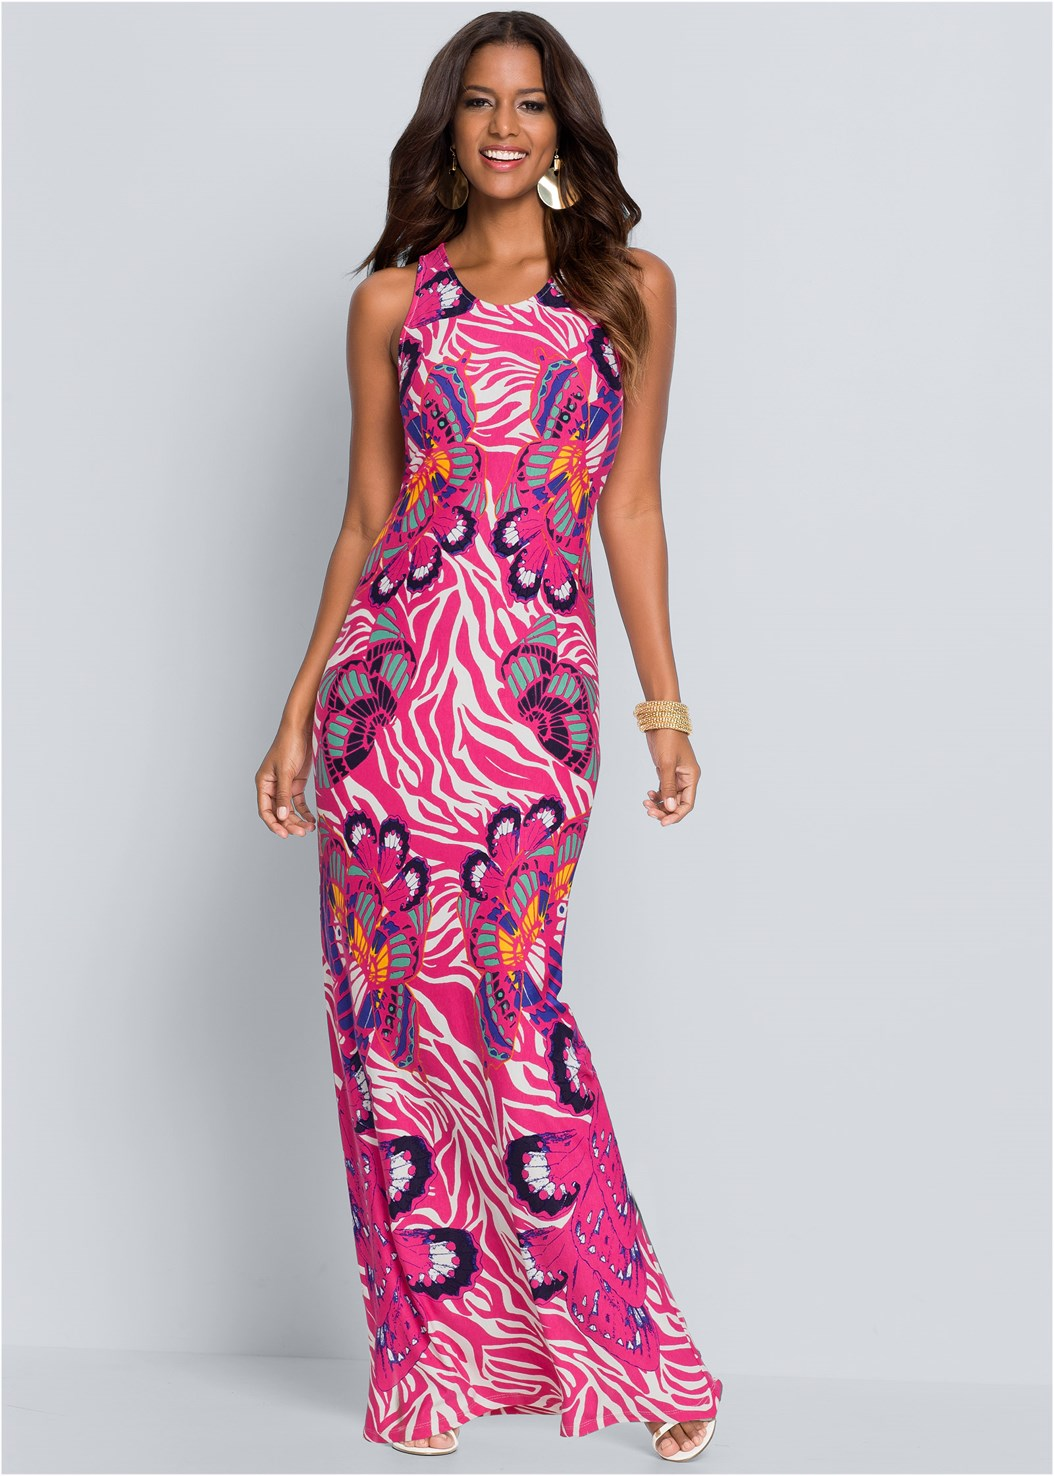 Abstract Printed Maxi Dress,Tassel Earrings